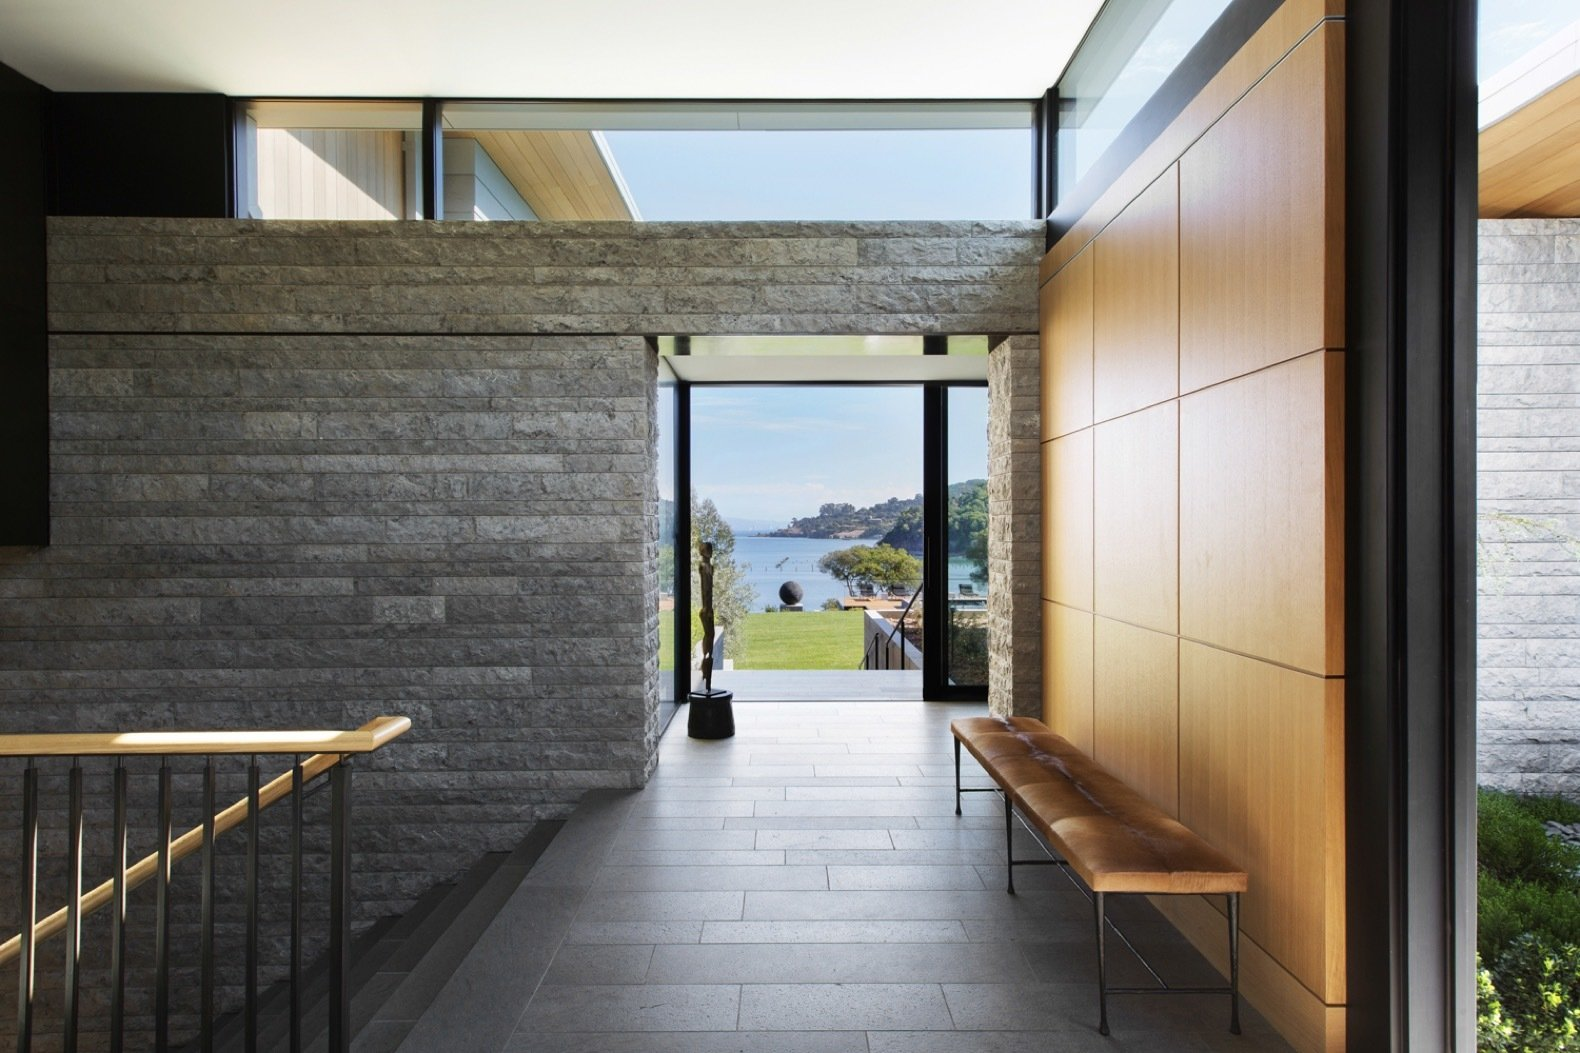 Hallway Aegean limestone continues from the exterior to the interior to create an indoor/outdoor connection.   Photo 4 of 14 in An Energy-Conscious Home Gets Woven Into a Waterfront Landscape